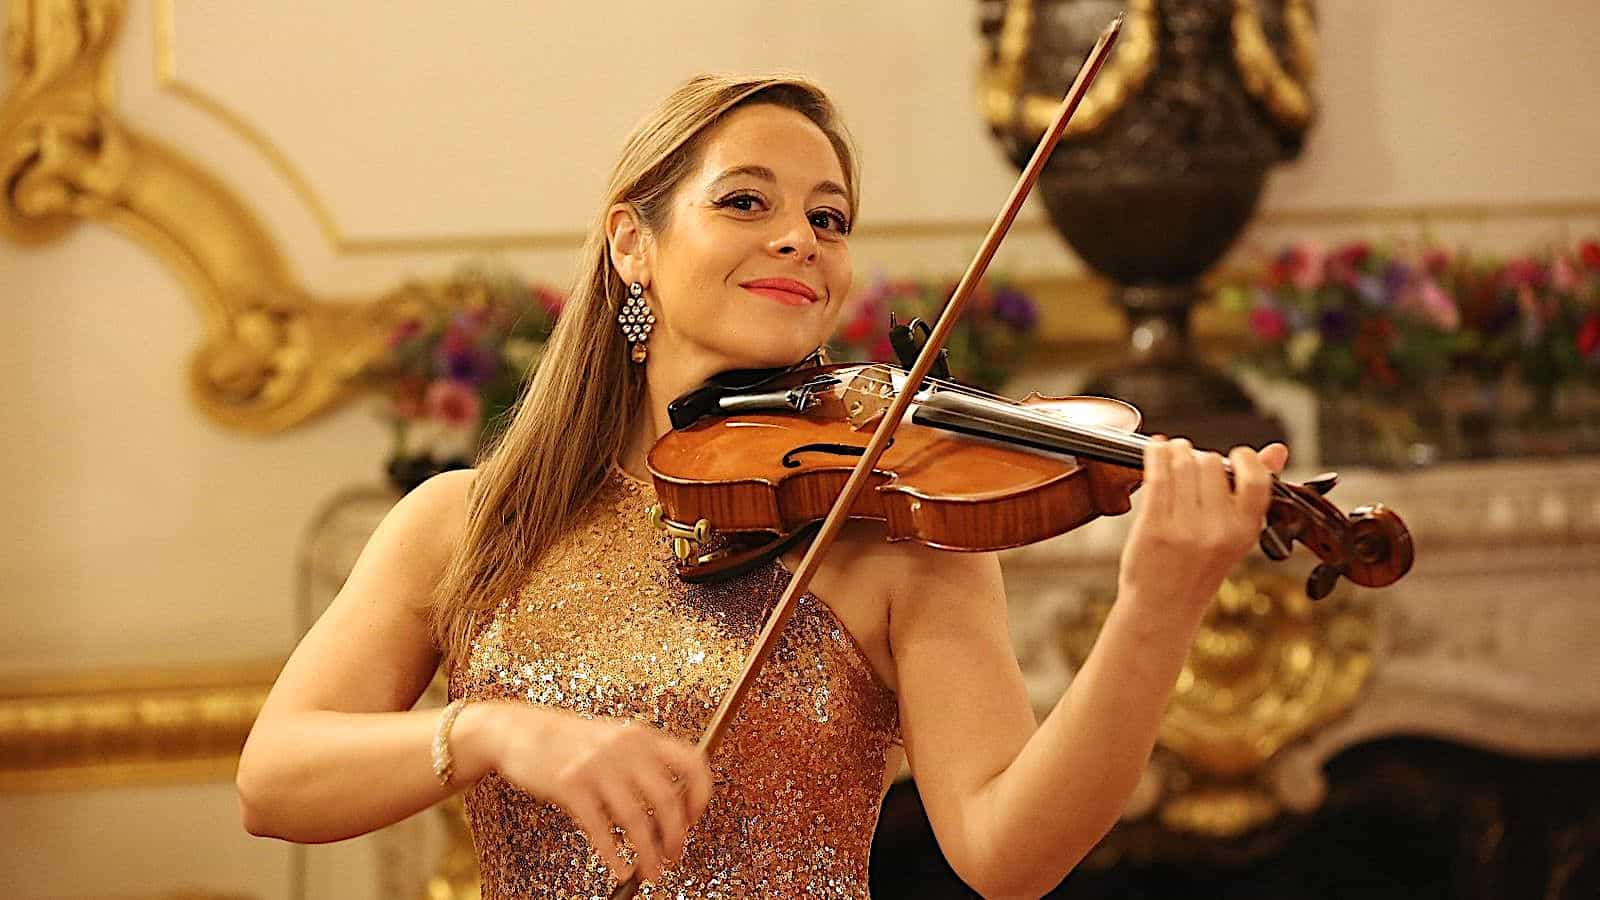 Female Violinist Hire | Female Violinist for Hire | Diane